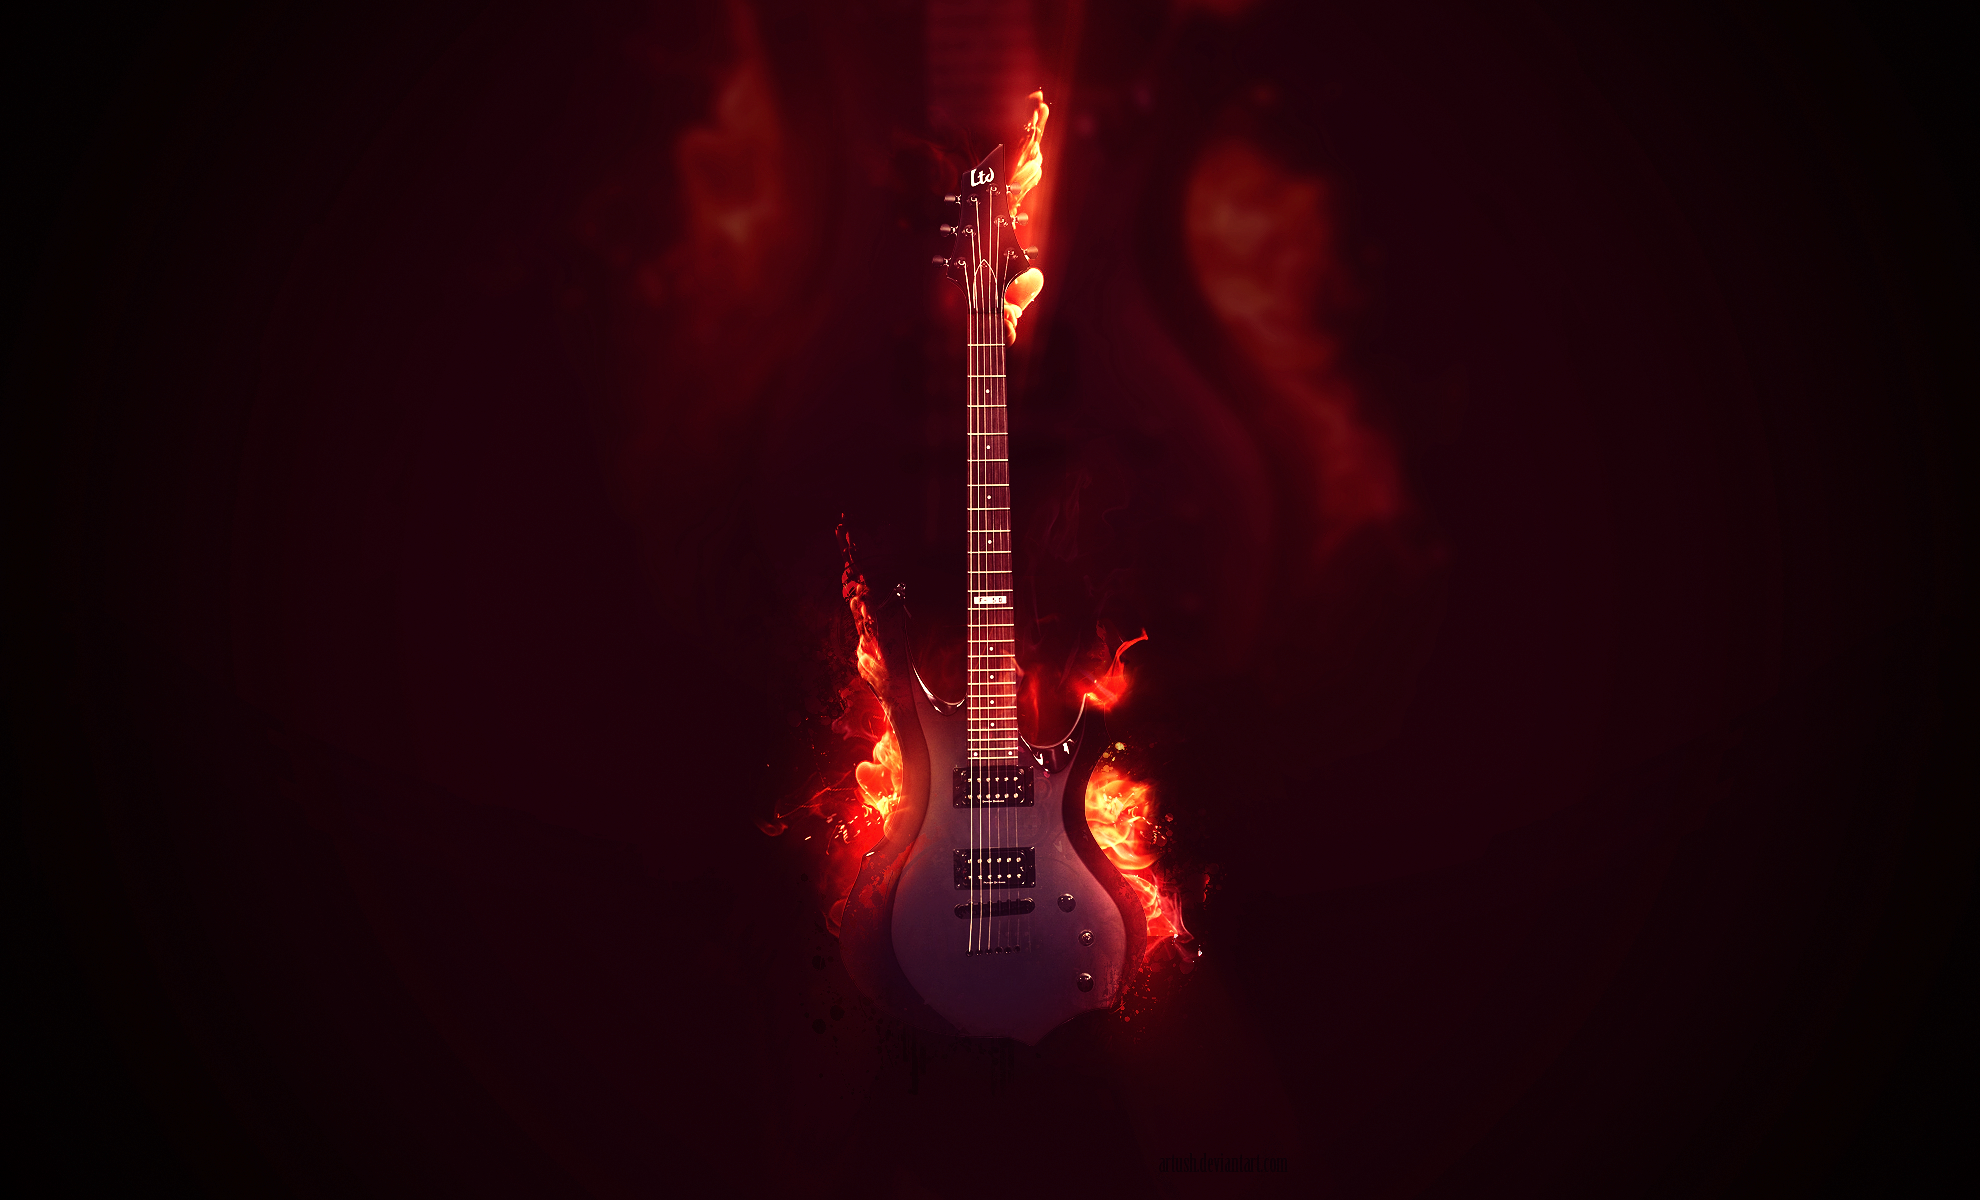 electric guitar art wallpaper fire - photo #22